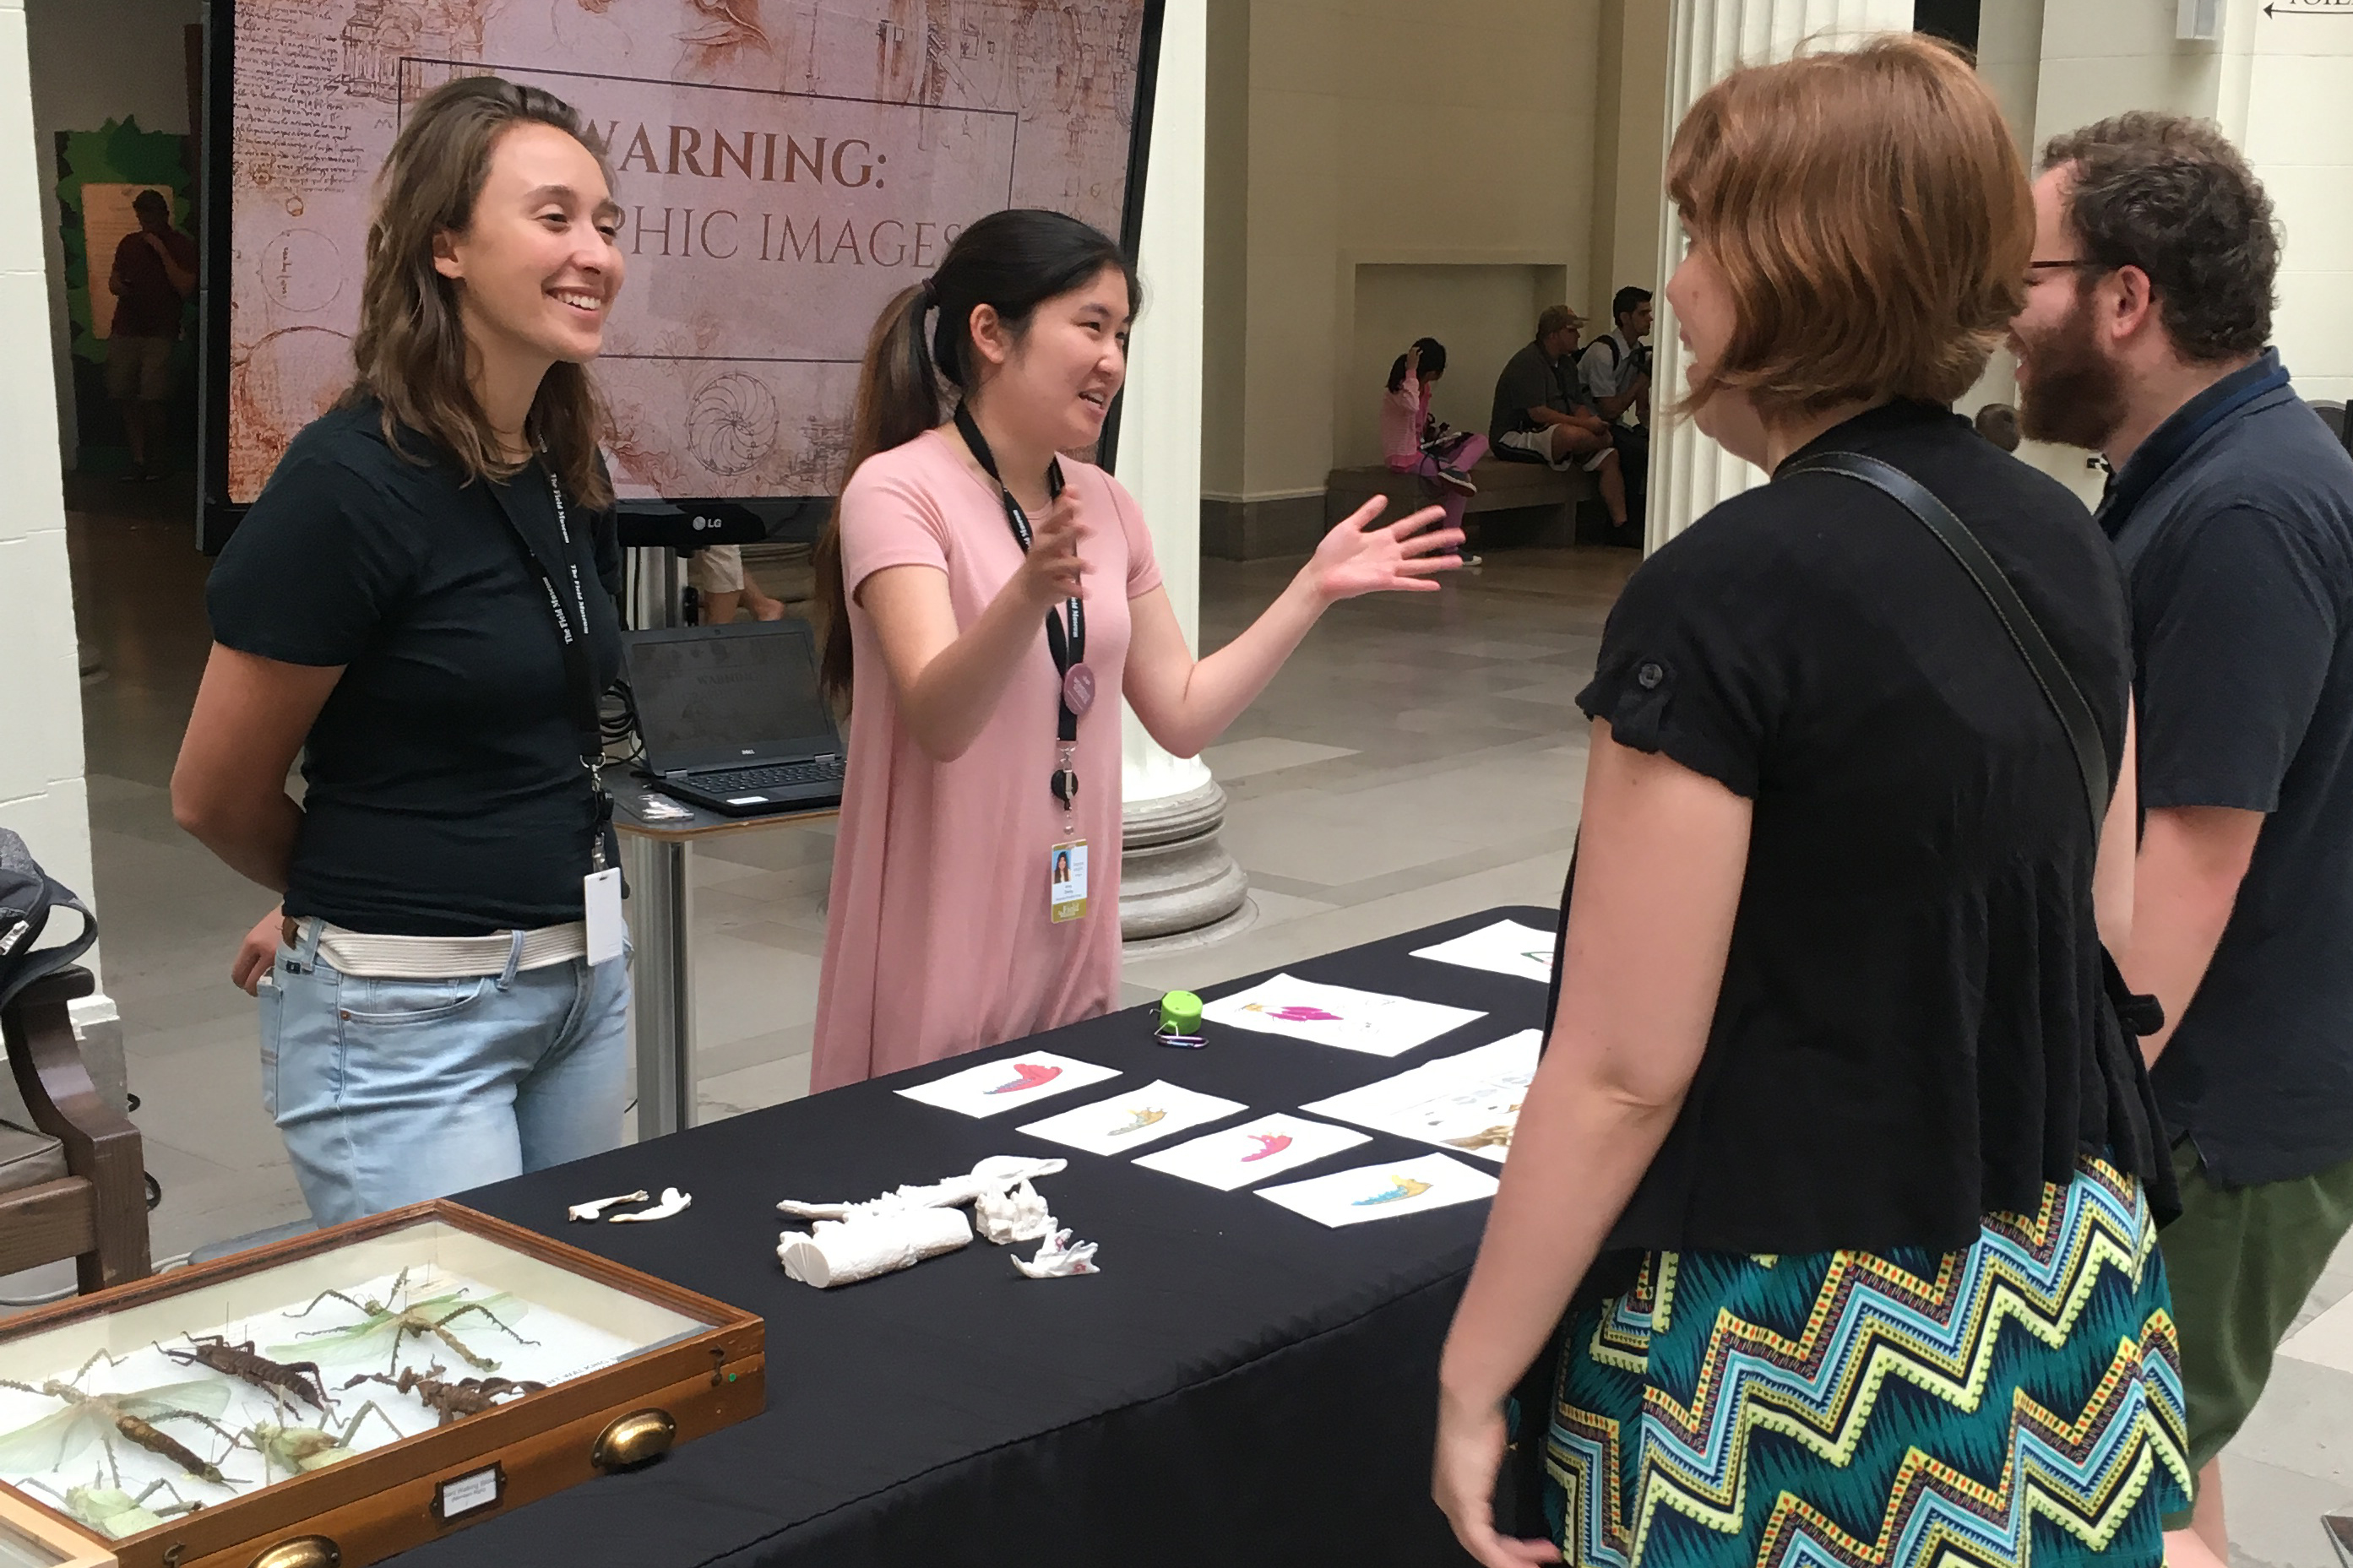 Two interns stand behind a table displaying objects from the Field Museum's collection. One speaks with the two people in front of her, gesturing as if she's showing the size of something.